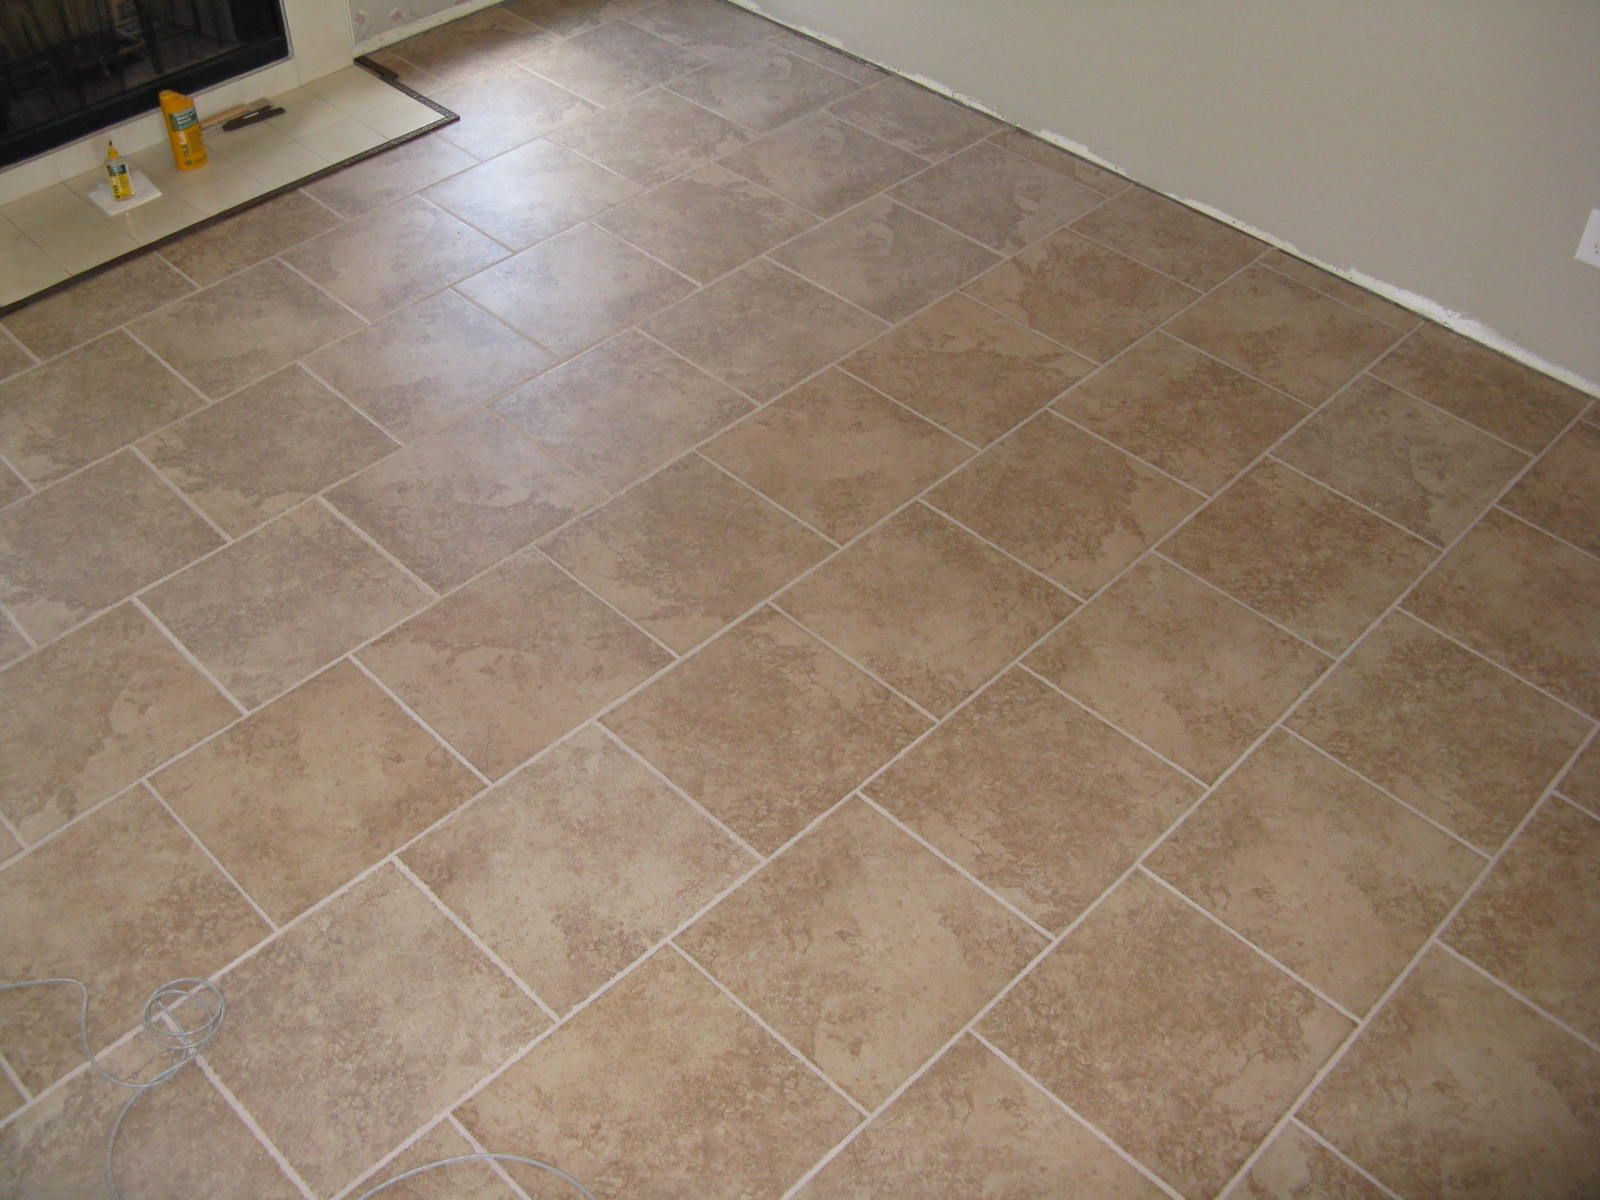 porcelain tile patterns ceramic tile work design kitchen floor